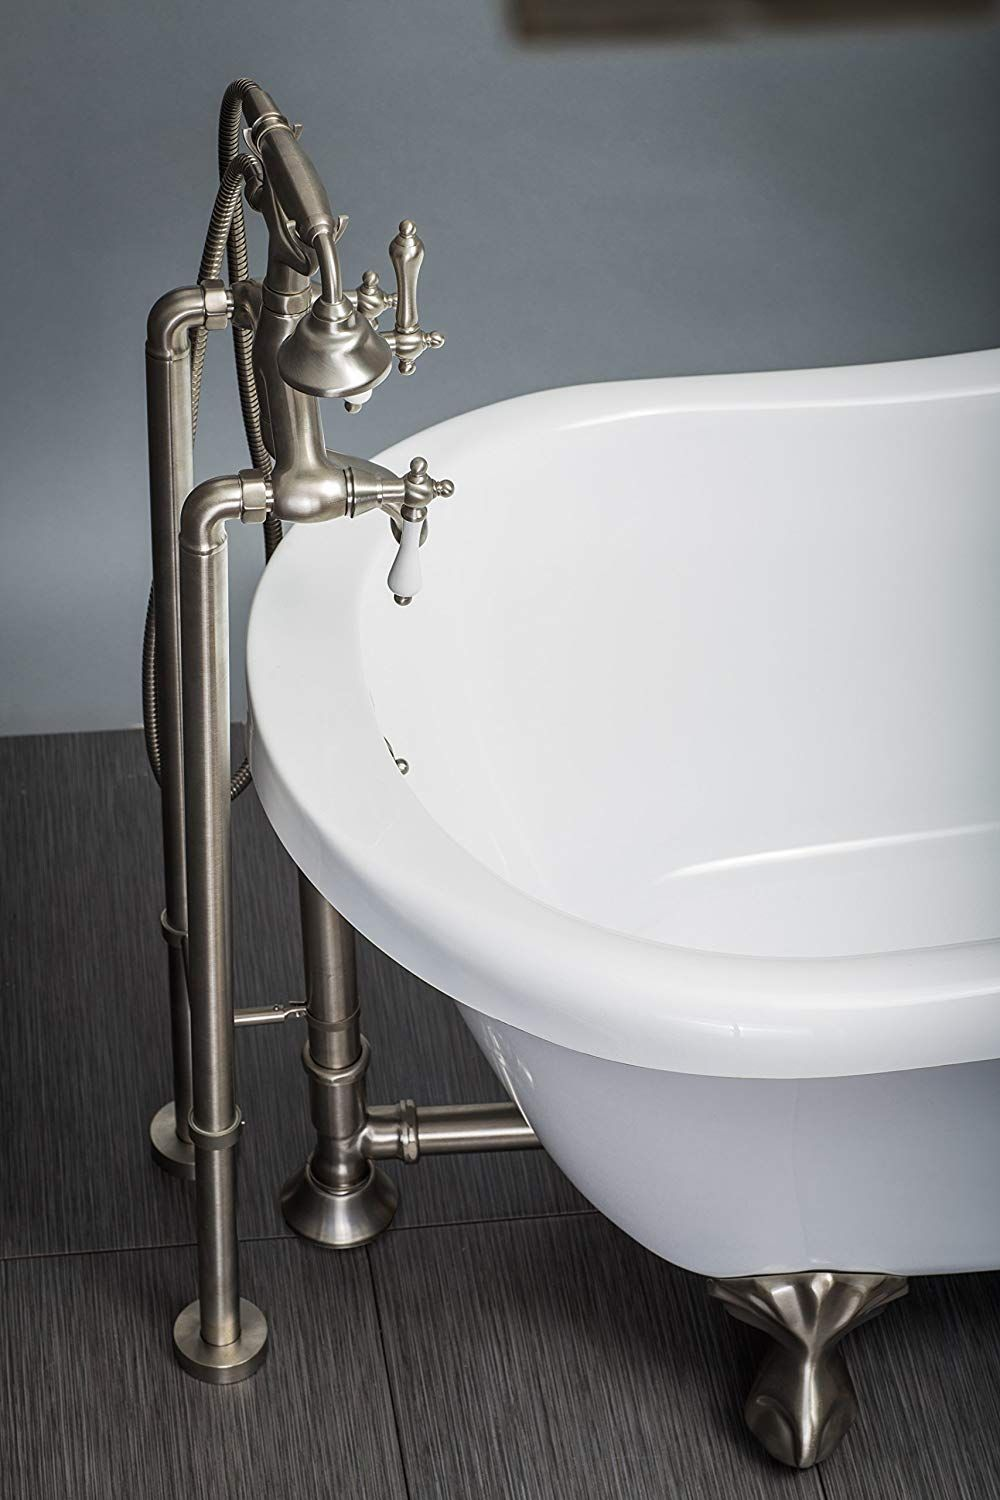 Best Freestanding Tub Faucet Reviews In 2020 With Images